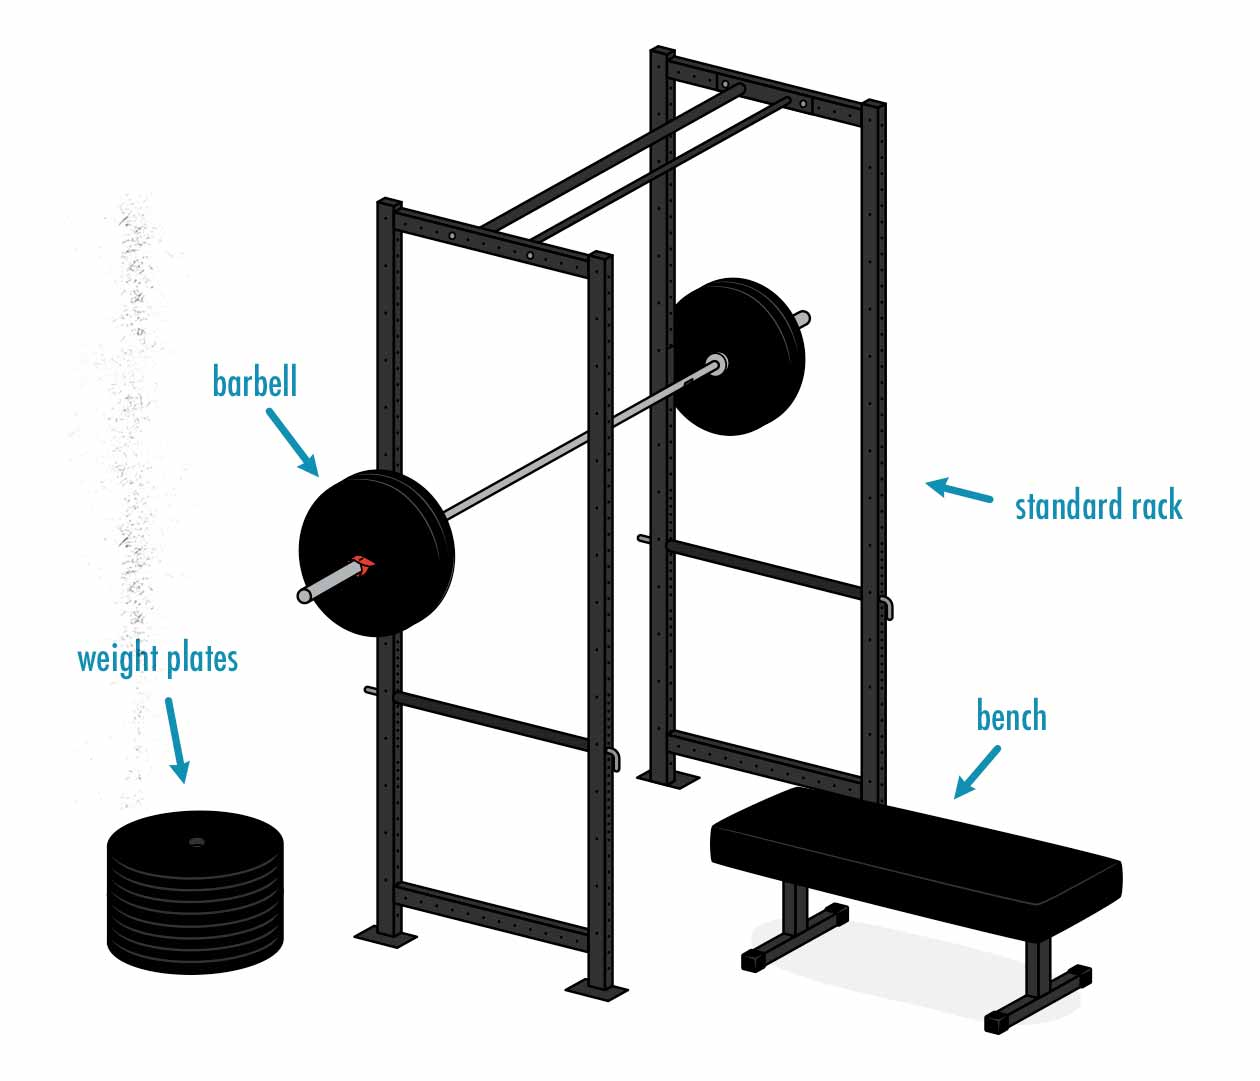 Illustration of the barbell home gym for Starting Strength or StrongLifts 5x5